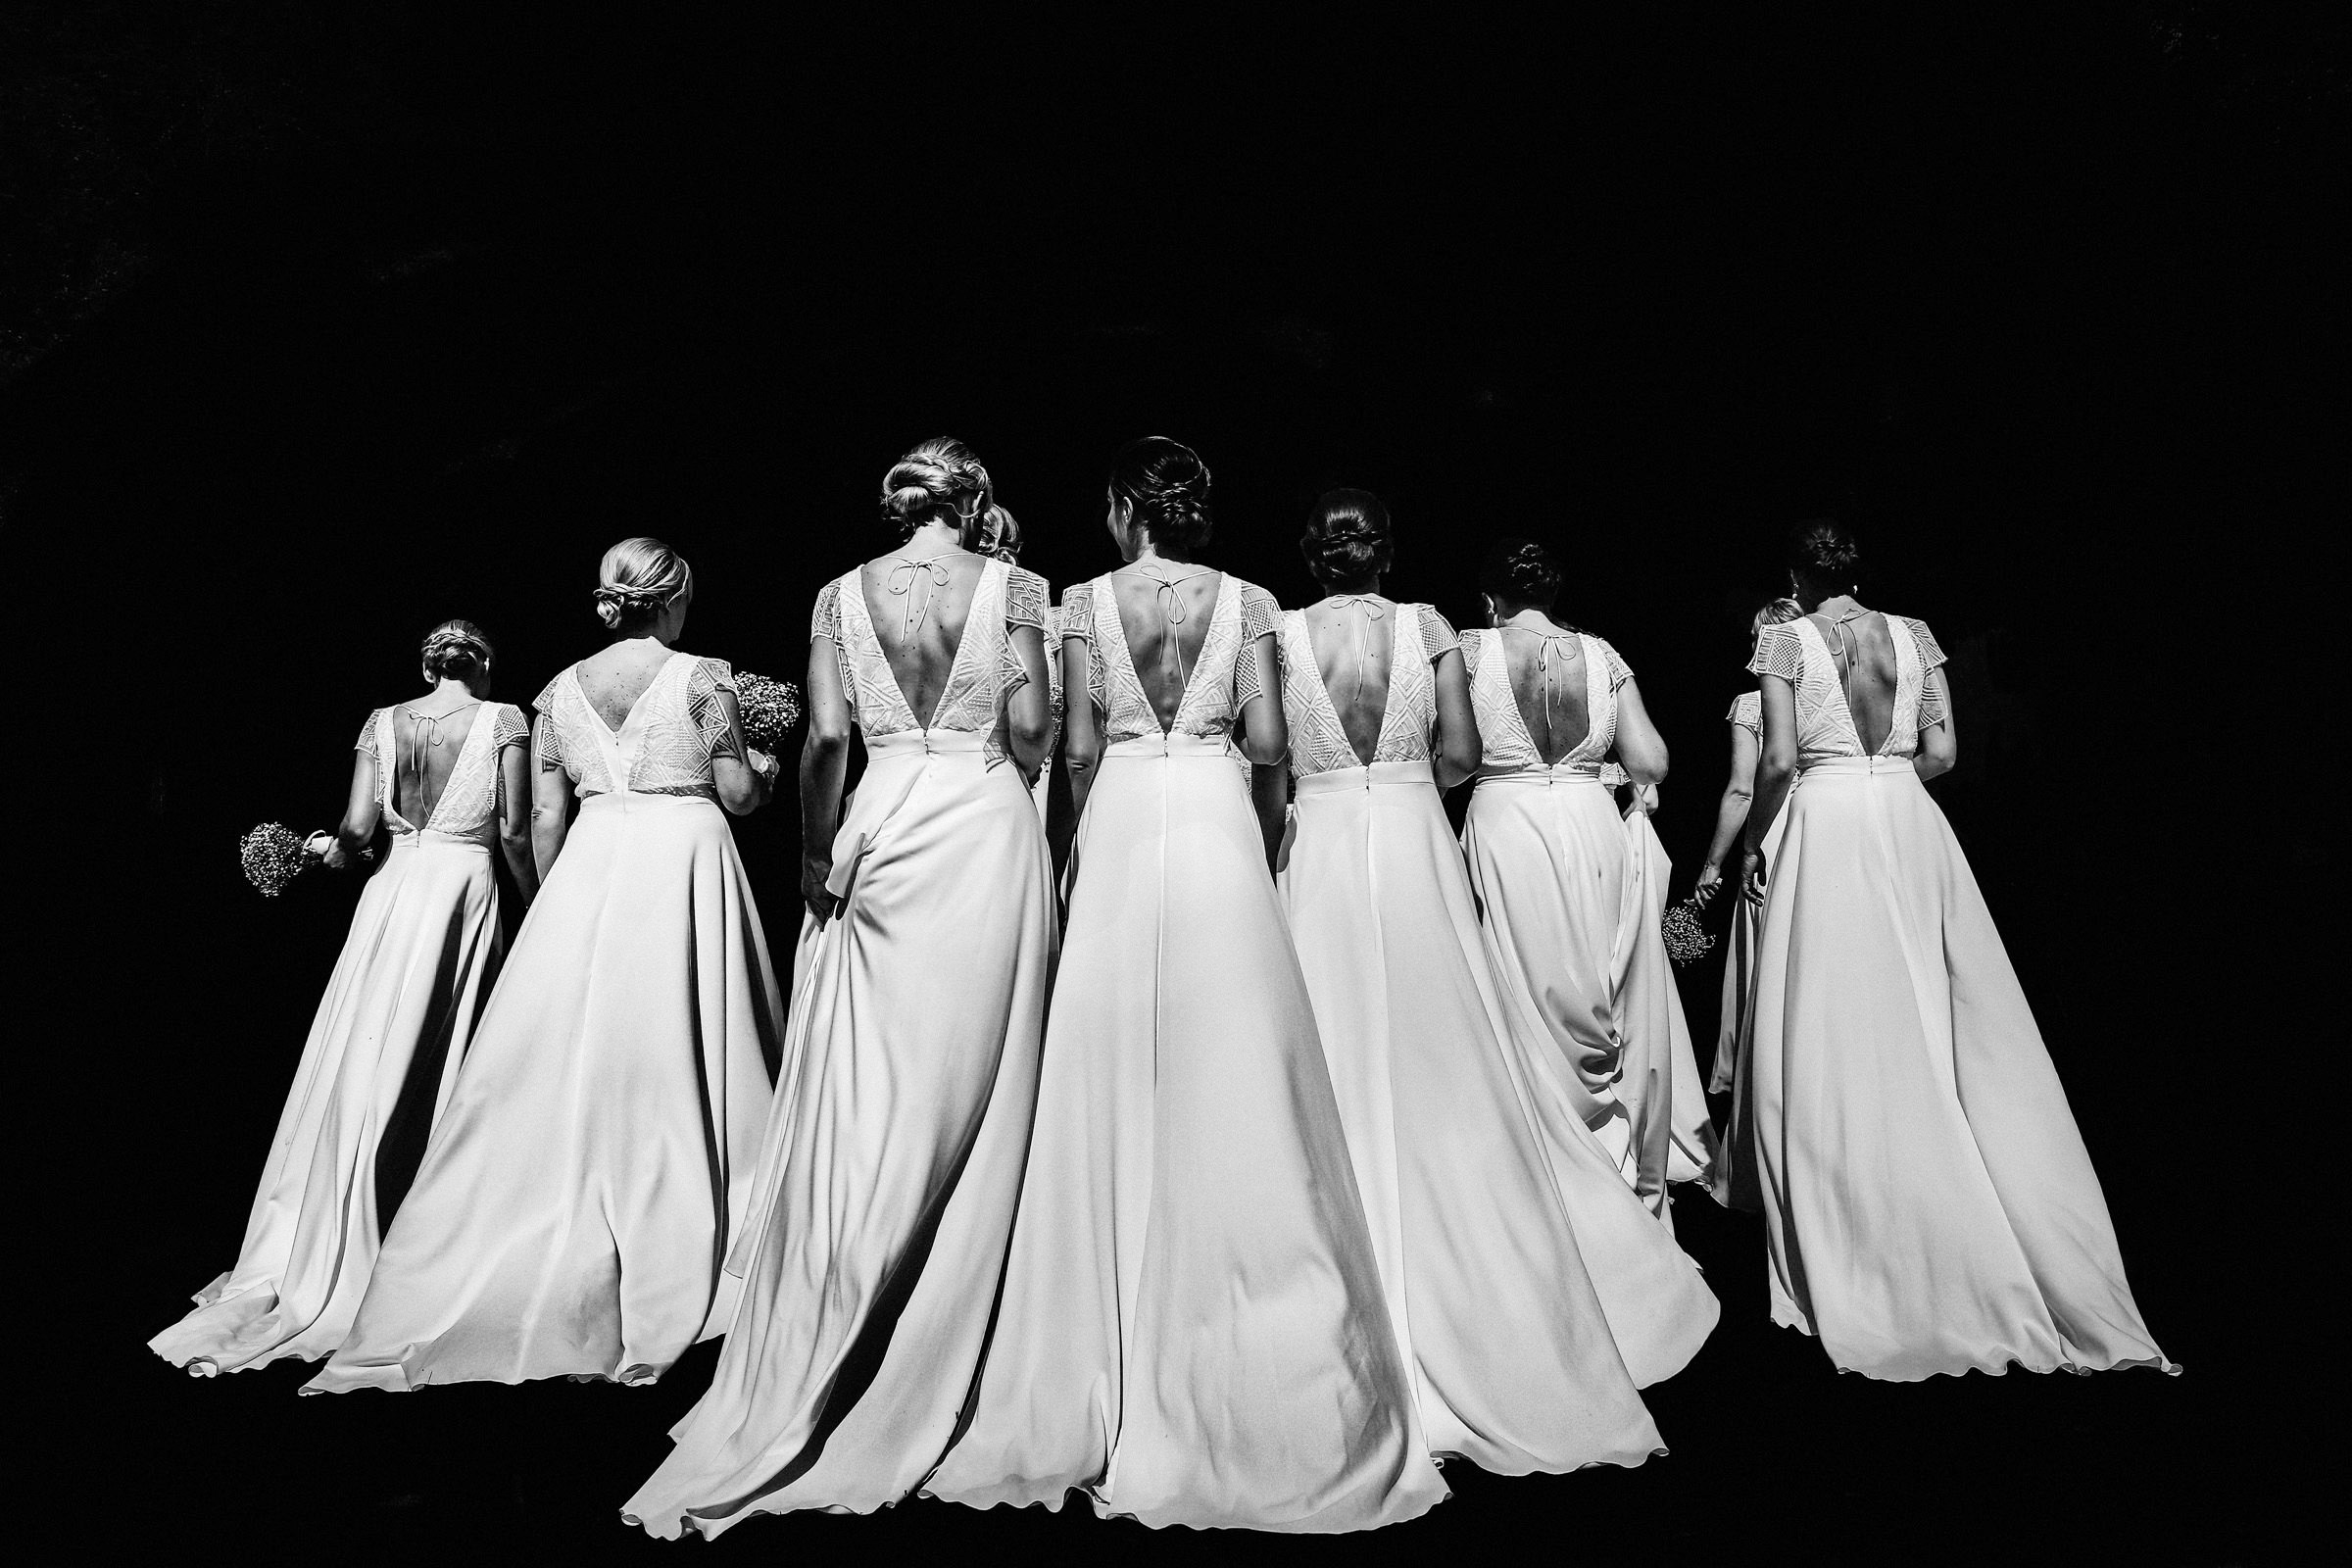 Bridesmaids walking away from camera, by Franck Boutonnet